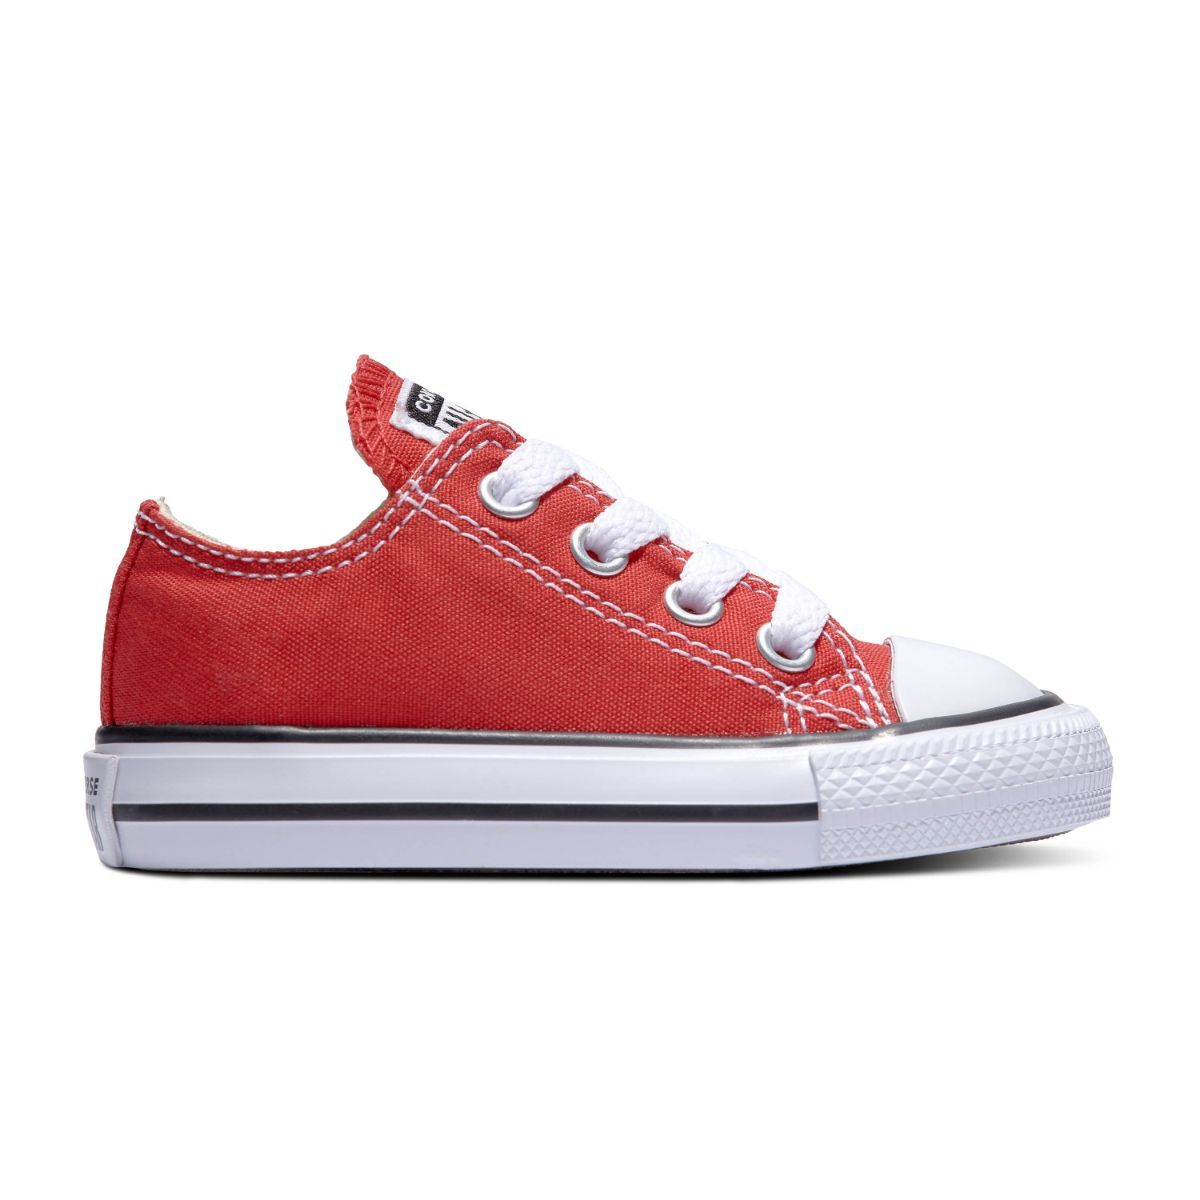 Chuck Taylor All Star Red Low Top